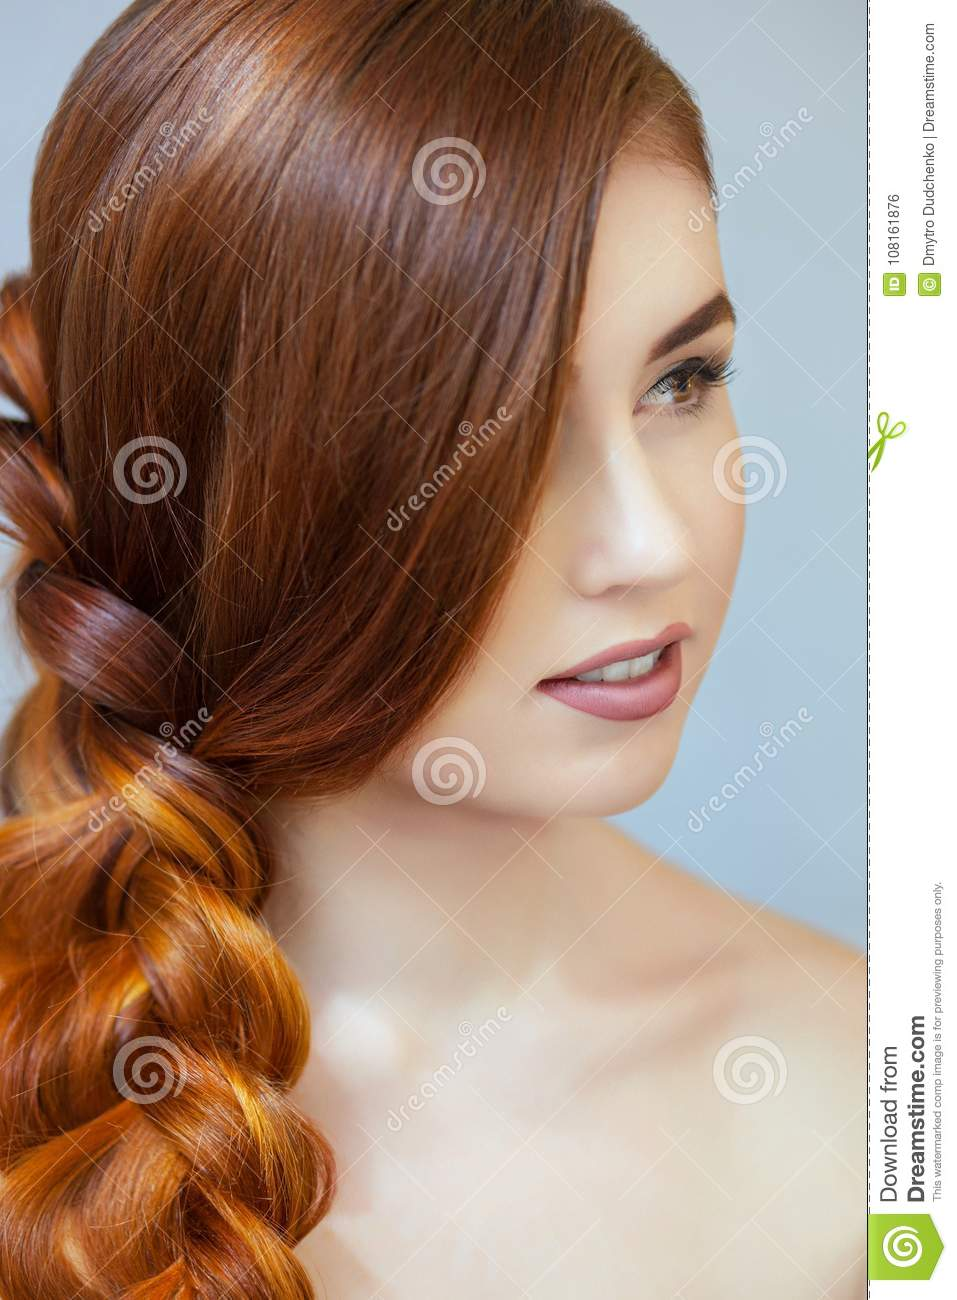 Beautiful girl with long red hair, braided with a French braid, in a beauty salon.